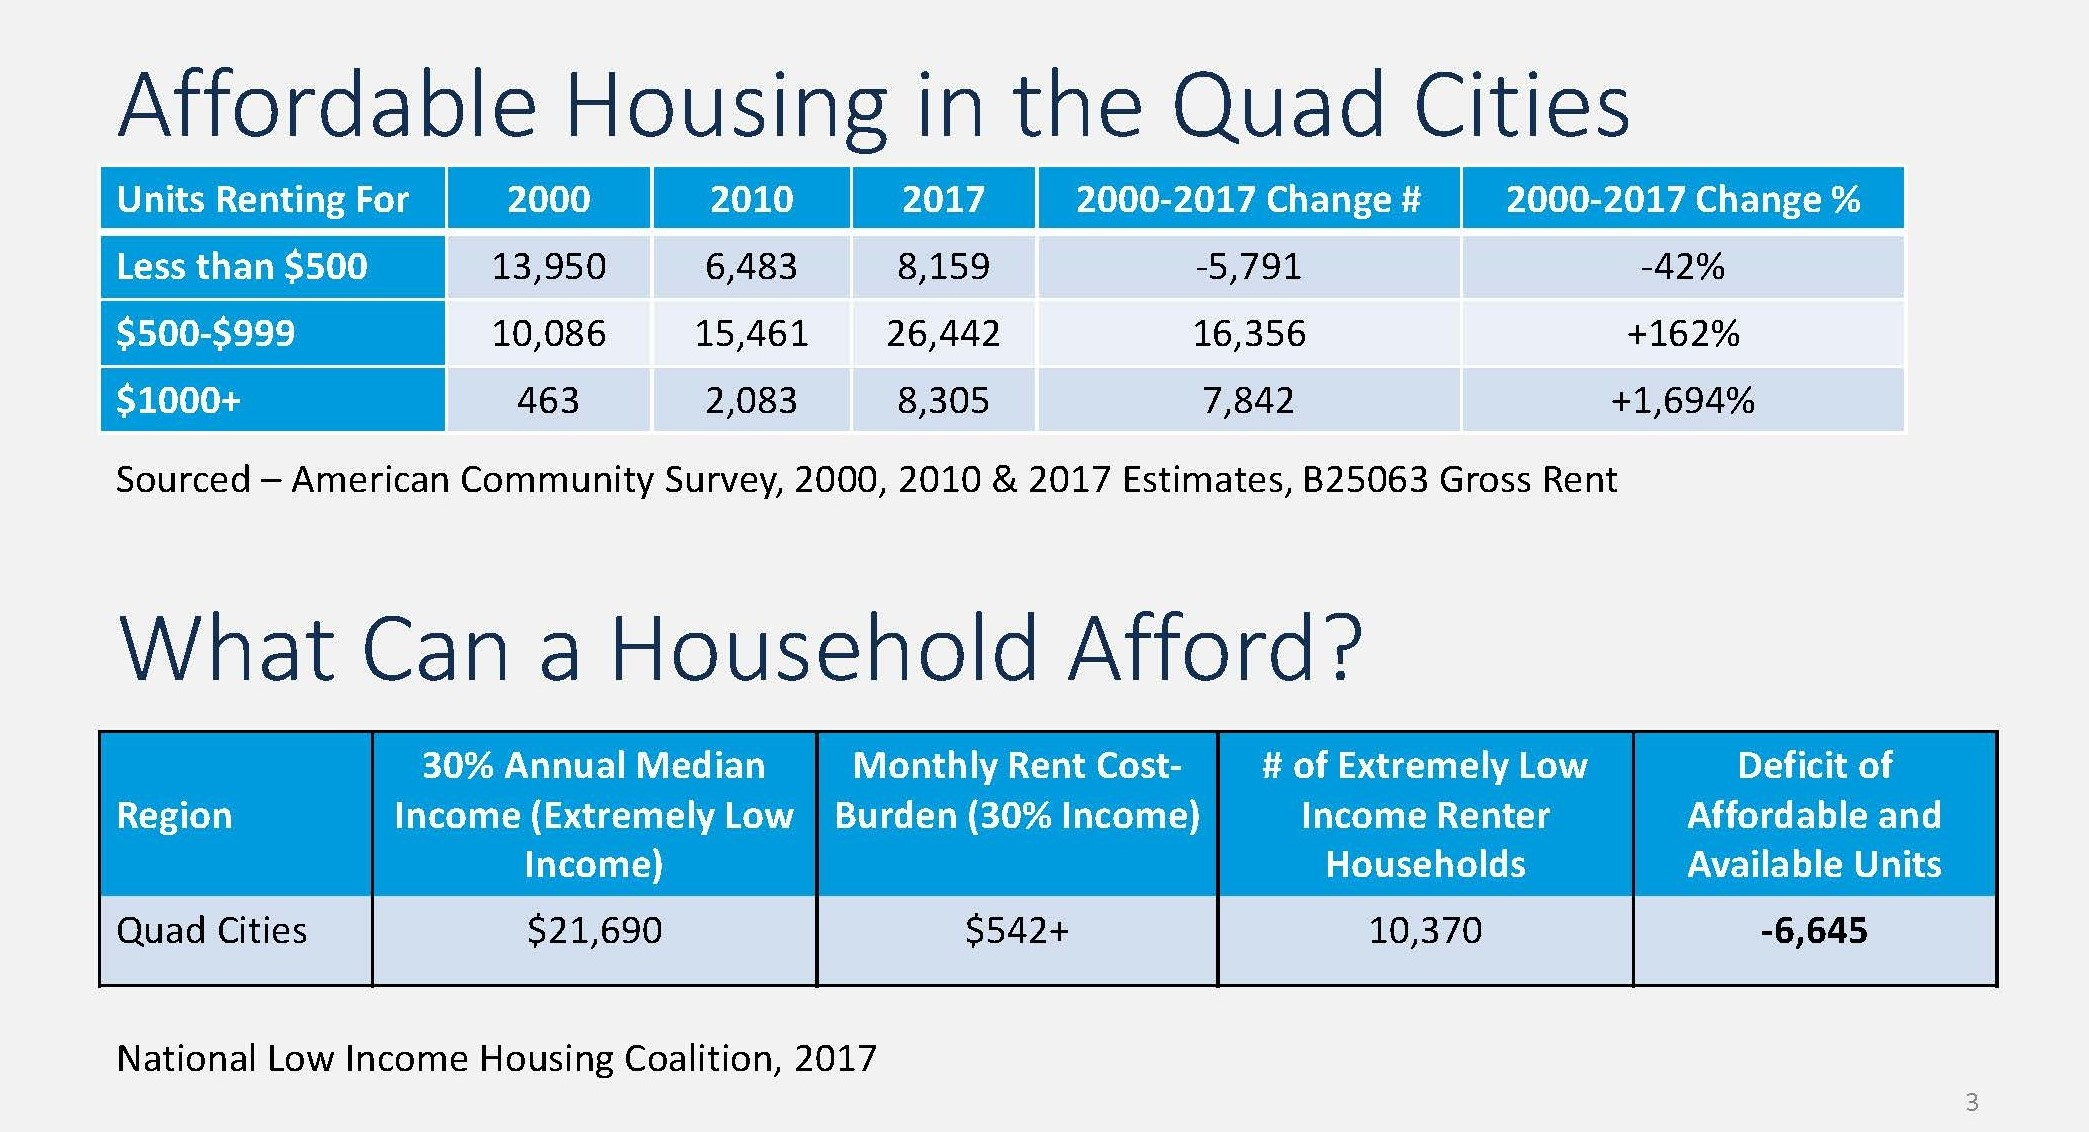 HHSI Affordable Housing Quad Cities Cropped.jpg